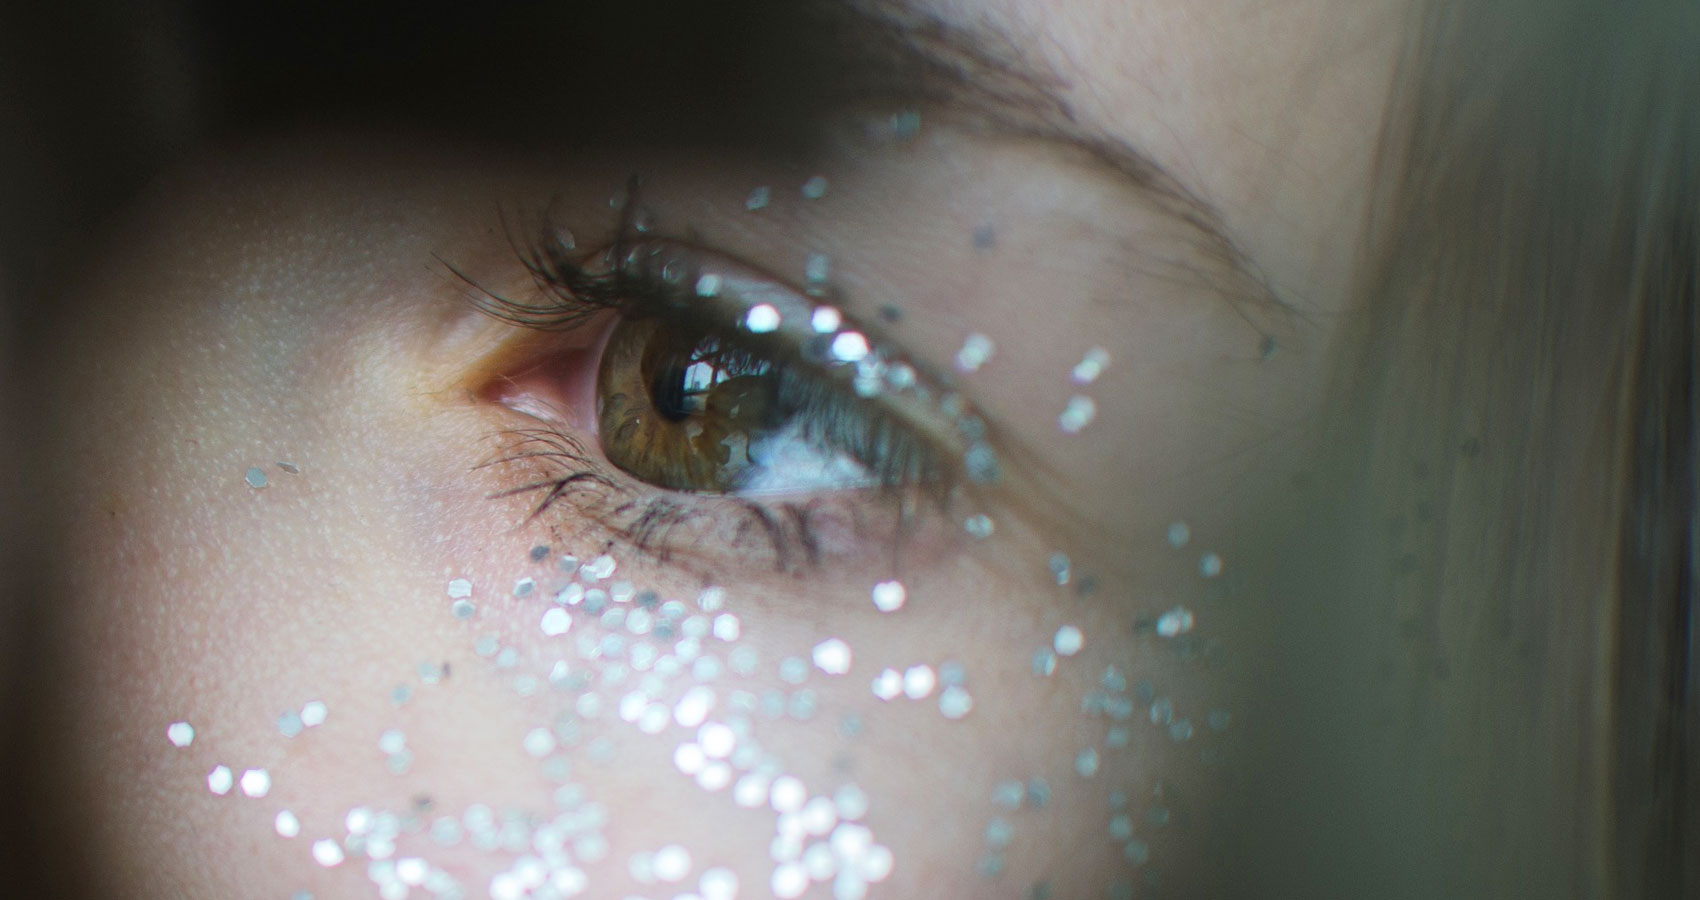 Sparkle and Love, micropoetry written by Ali Aryanat Spillwords.com